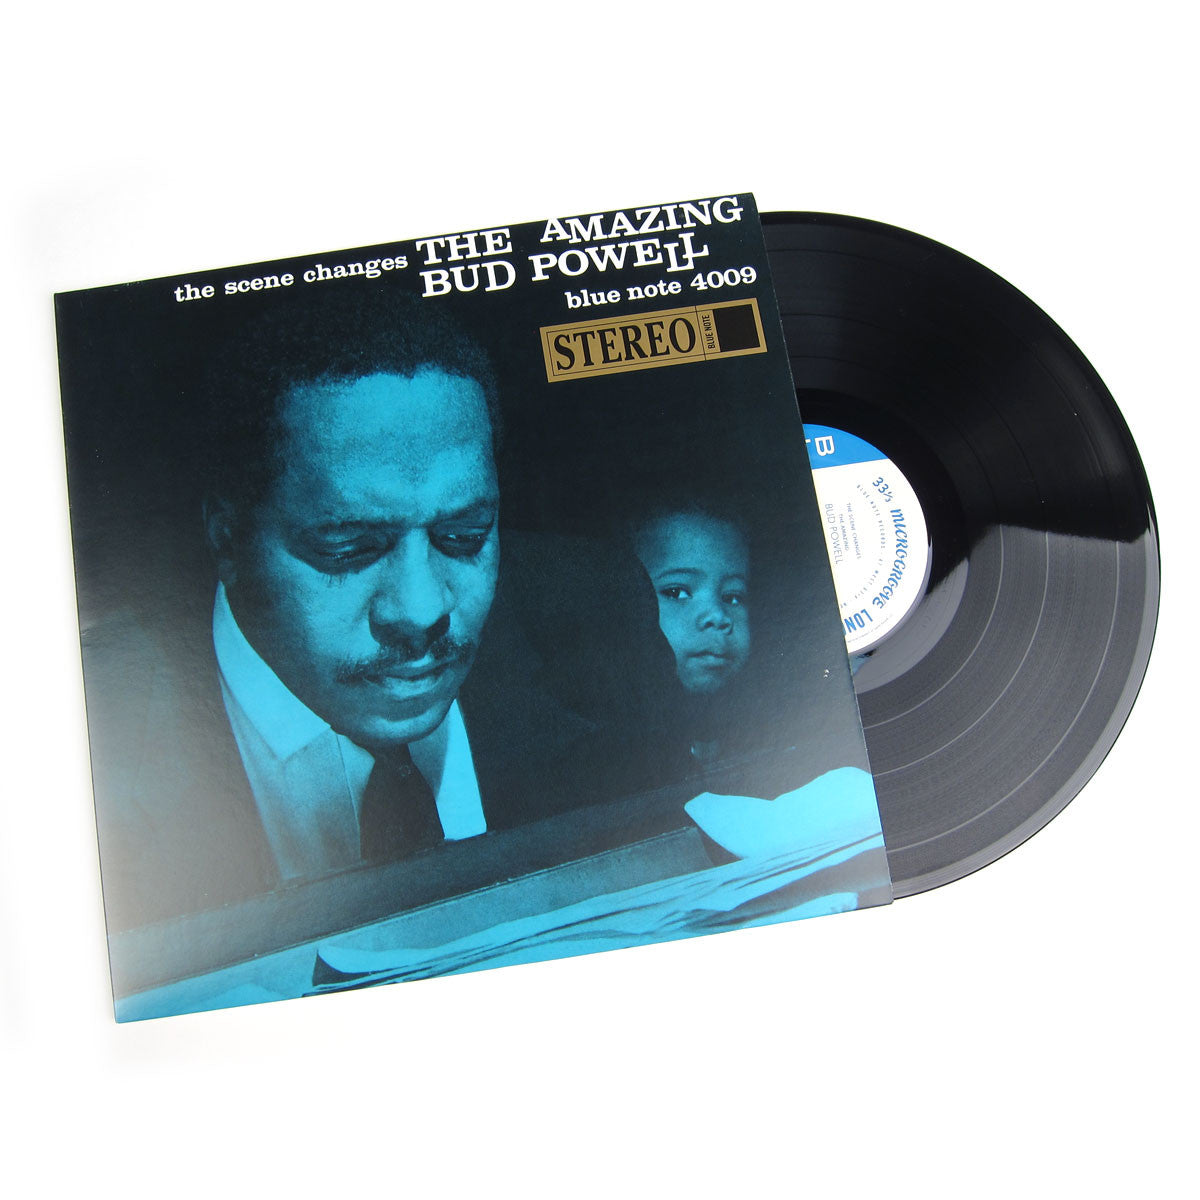 Bud Powell: The Scene Changes Vinyl LP